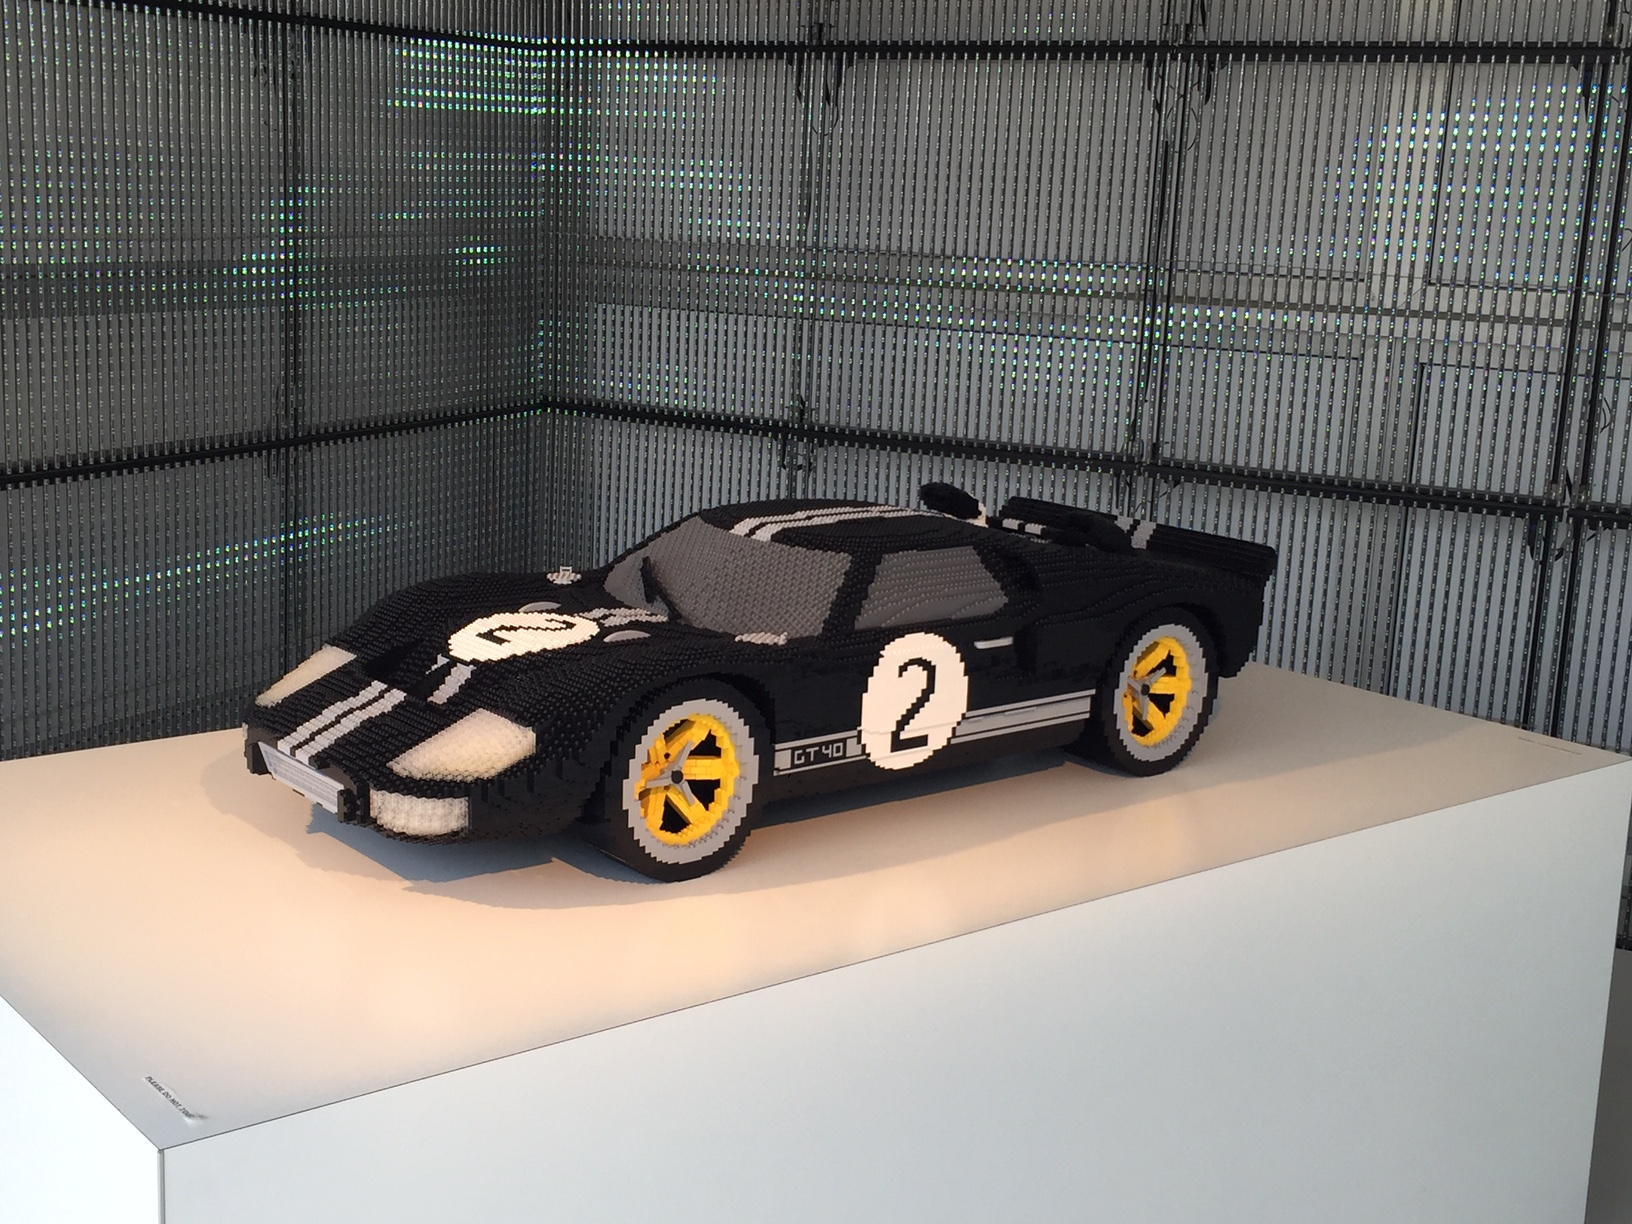 Cool! A giant Lego model of our car!!